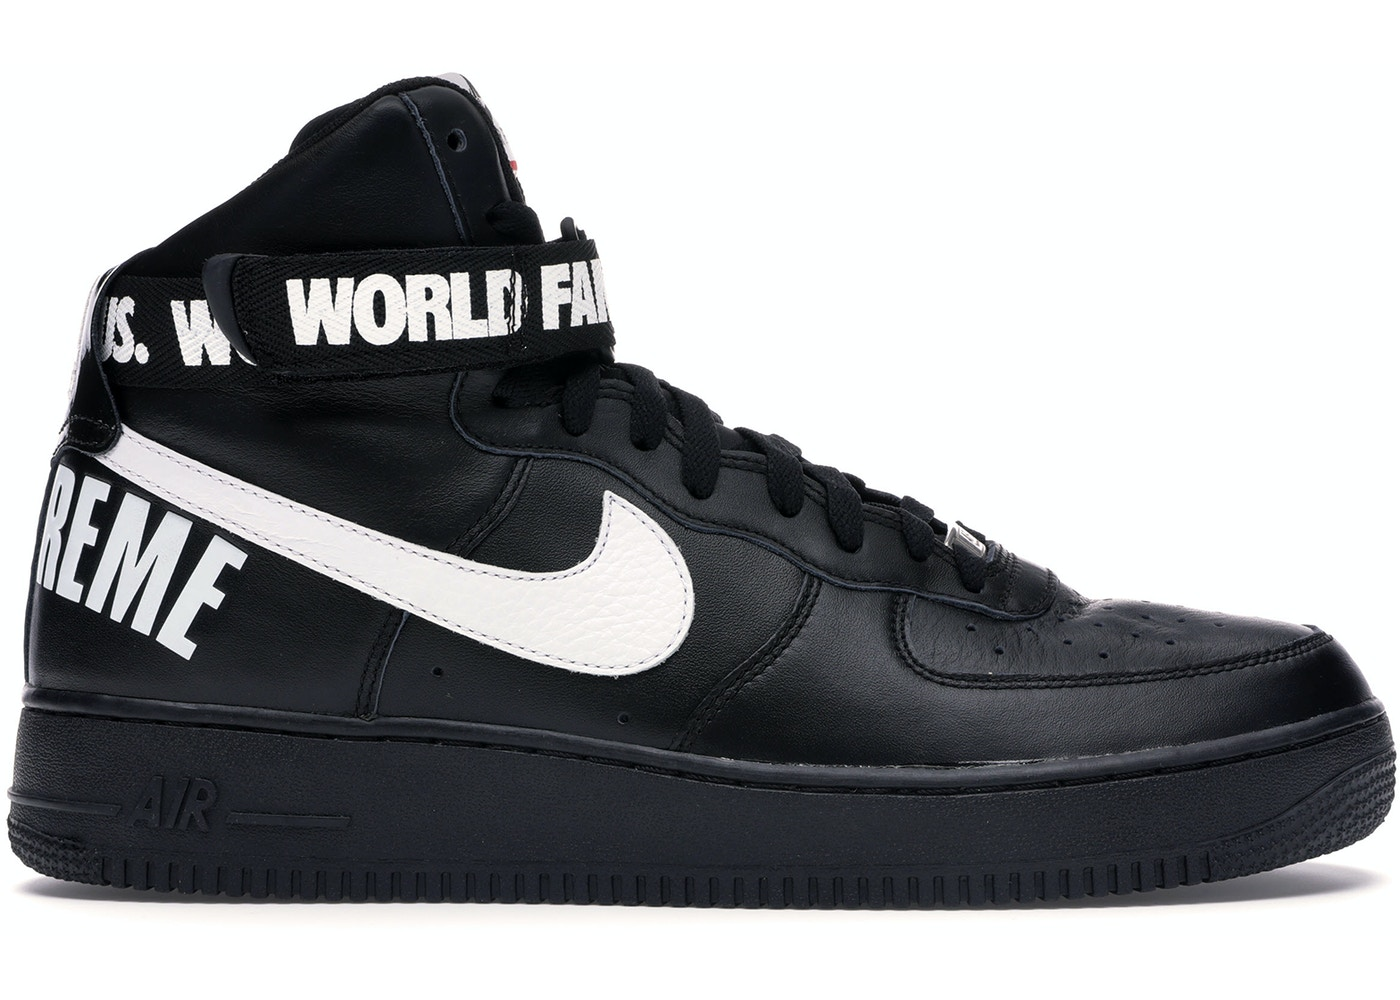 premium selection 45366 8f603 Air Force 1 High Supreme World Famous Black